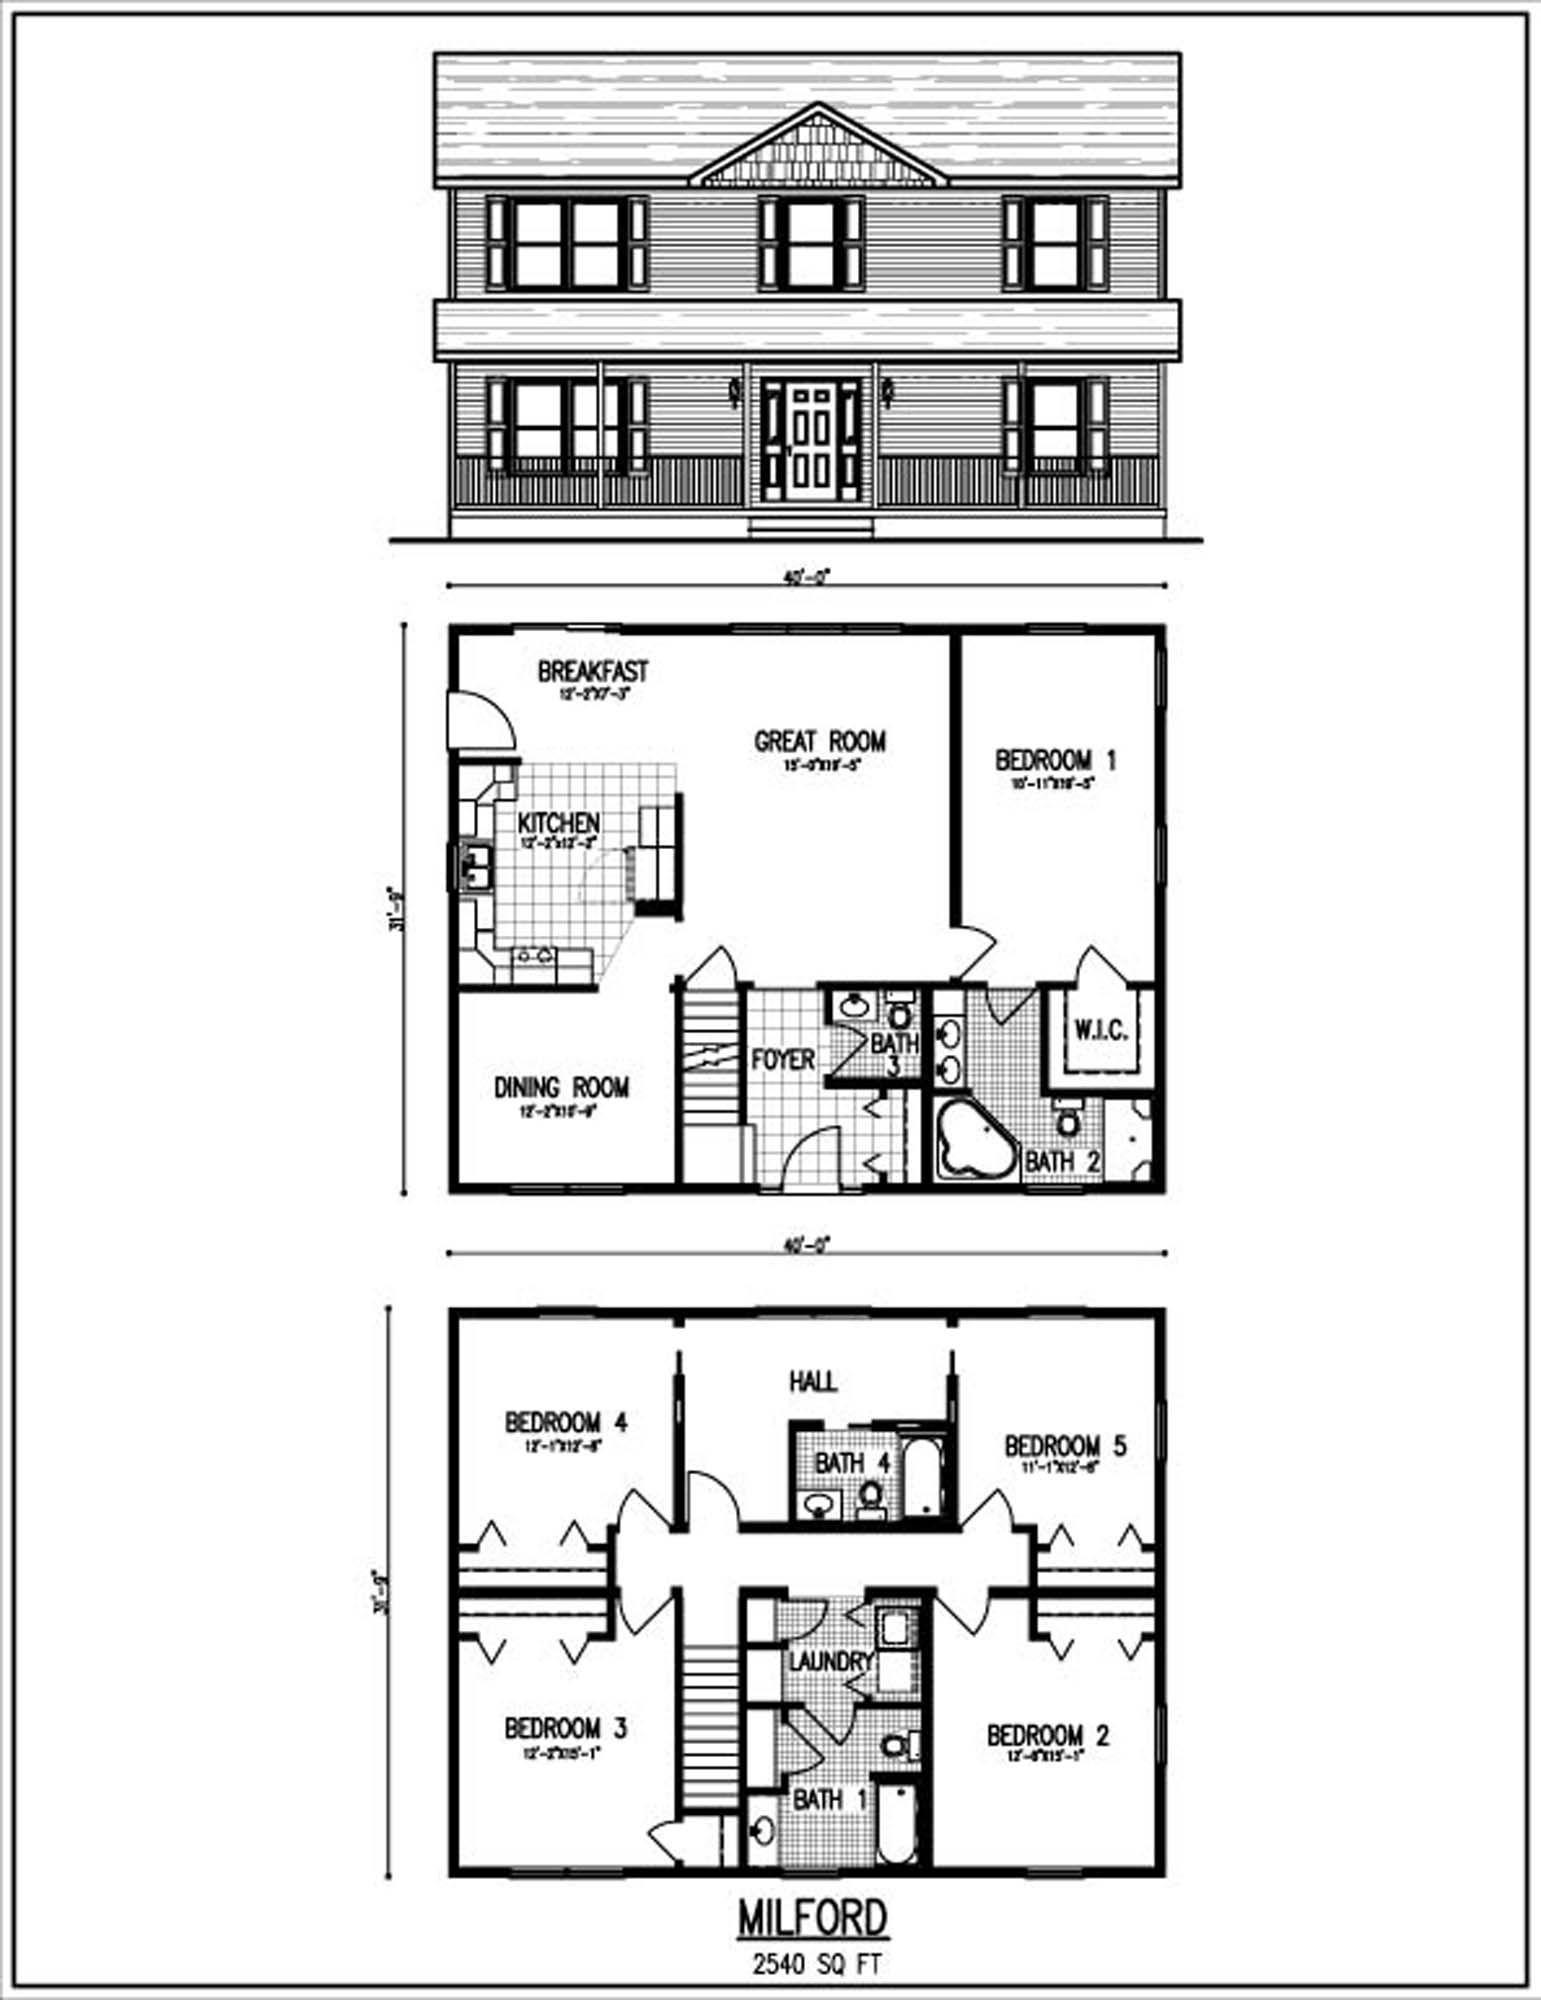 Beautiful 2 story house plans with upper level floor plan for Small 2 story house plans